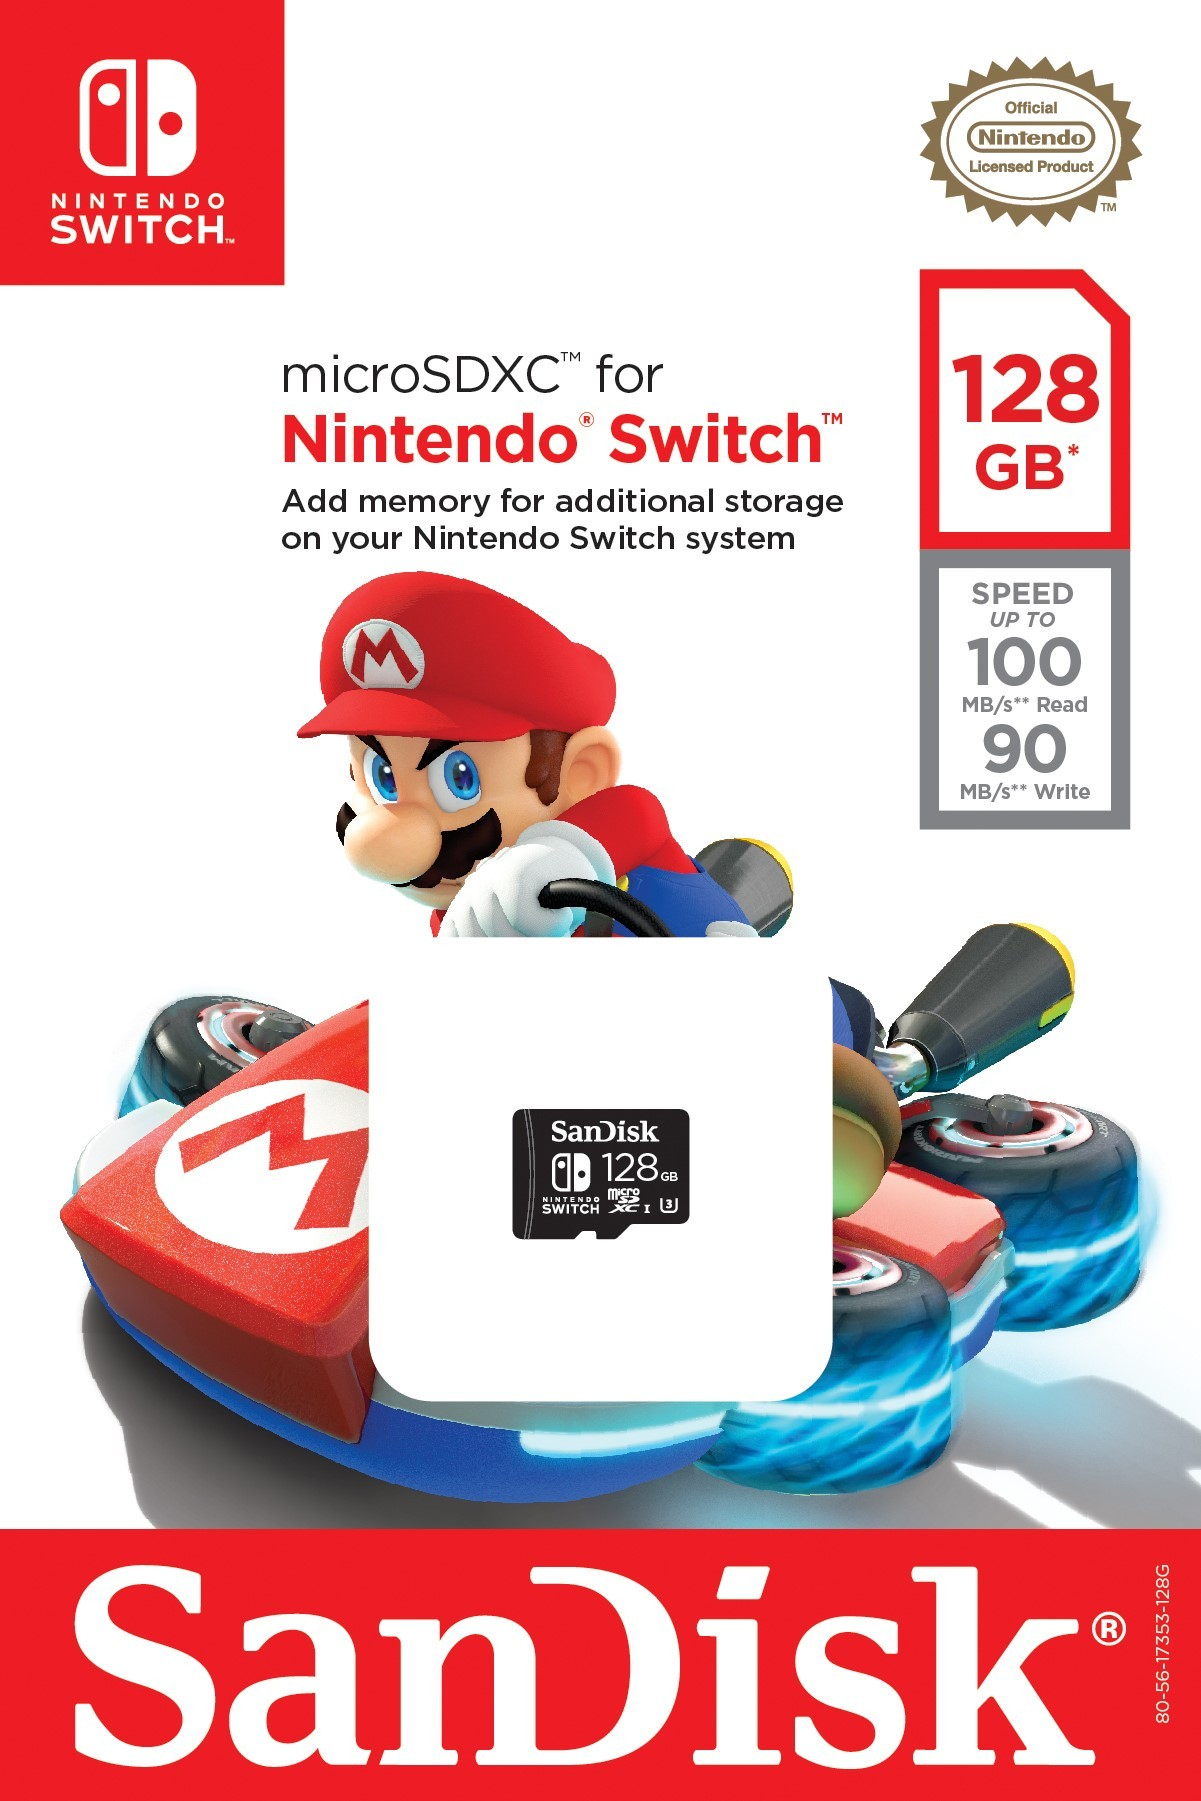 Nintendo Partners With Western Digital To Create Licensed Sandisk Microsd Ultra 80 Mbps 64 Gb Switch Memory Cards Business Wire